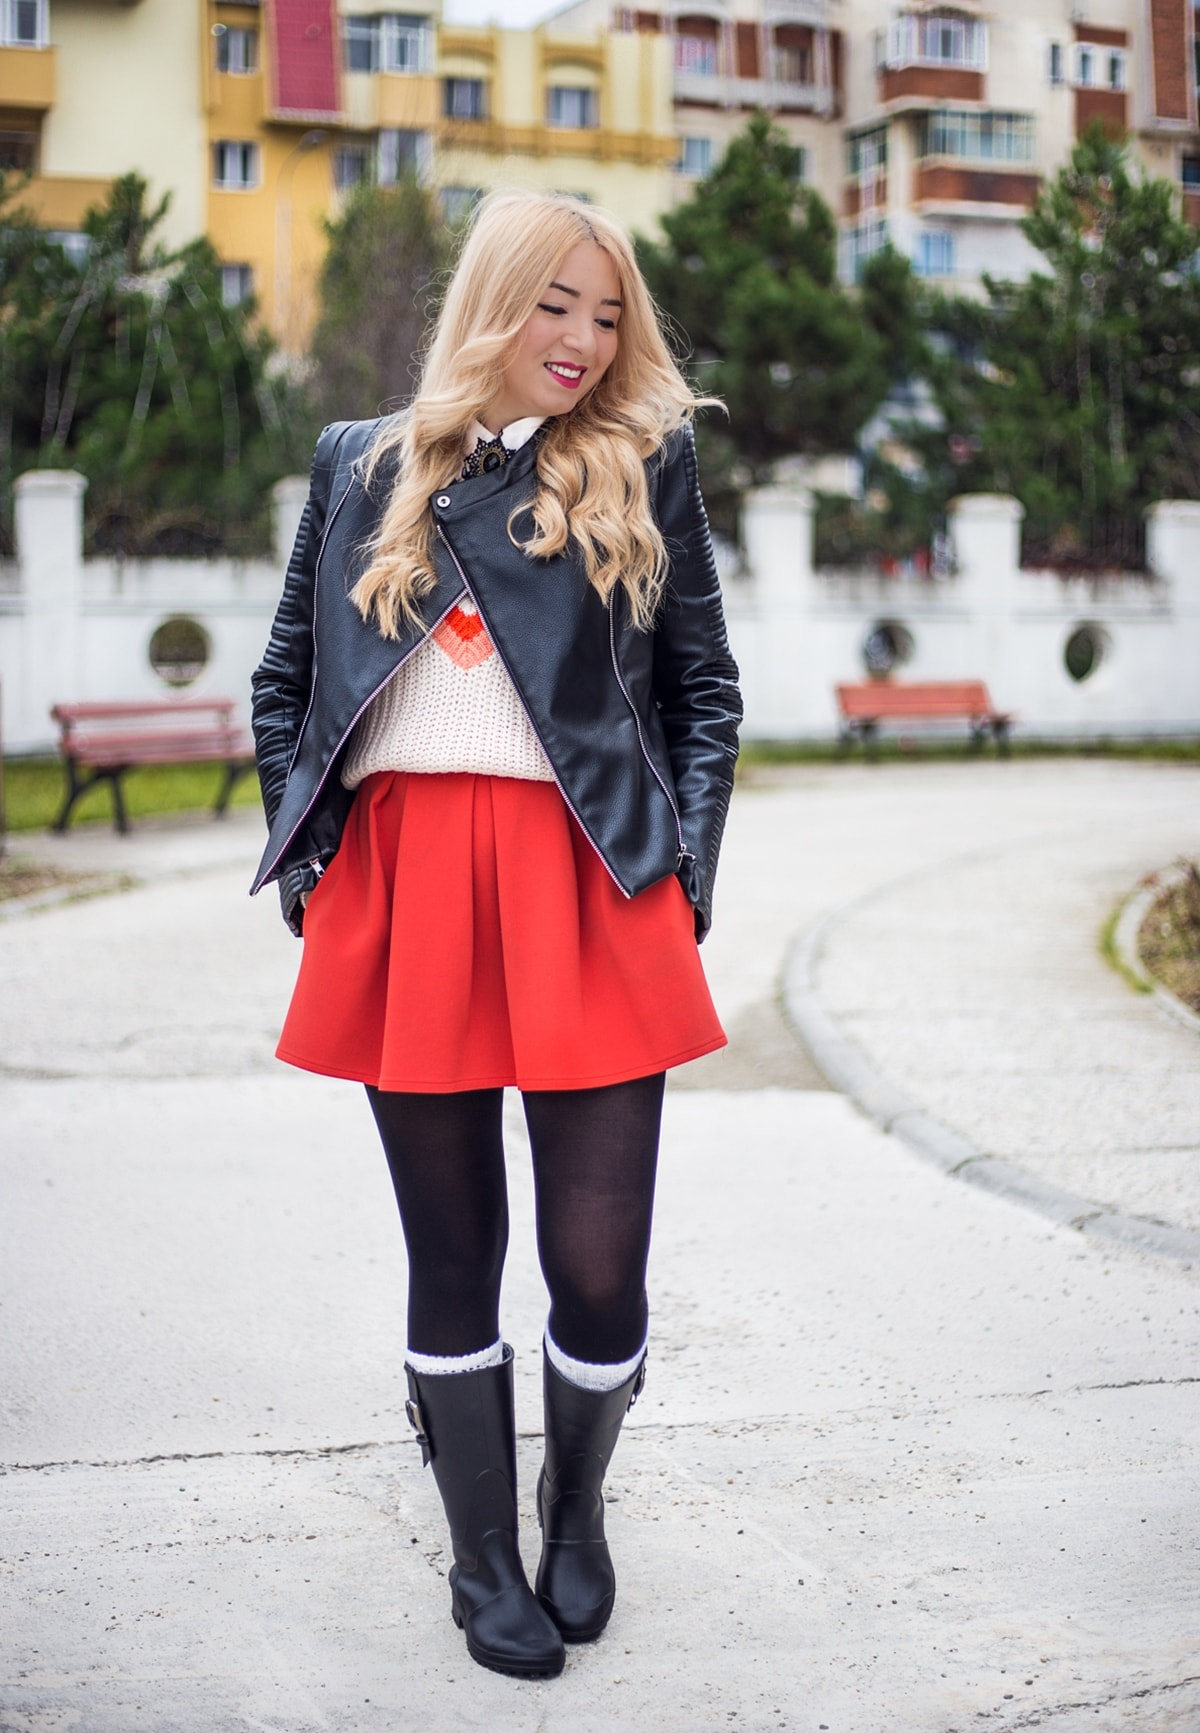 Street style, autumn look 2016 2017, red pleated short skirt, rain boots with white socks, black boots, black jacket, tights, Andreea Ristea